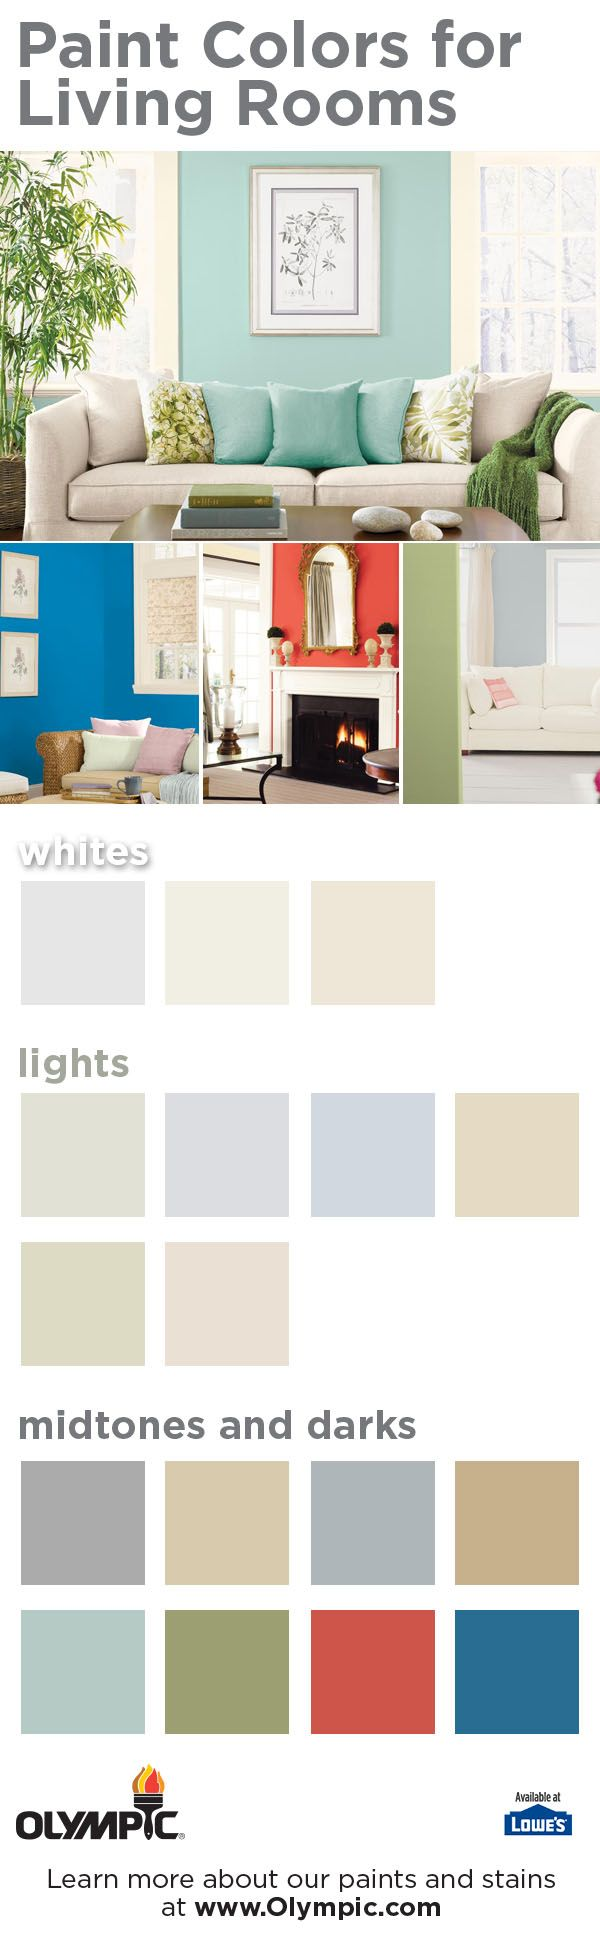 Colors For My Living Room Part - 42: Living Room Color Ideas - Get Inspired!